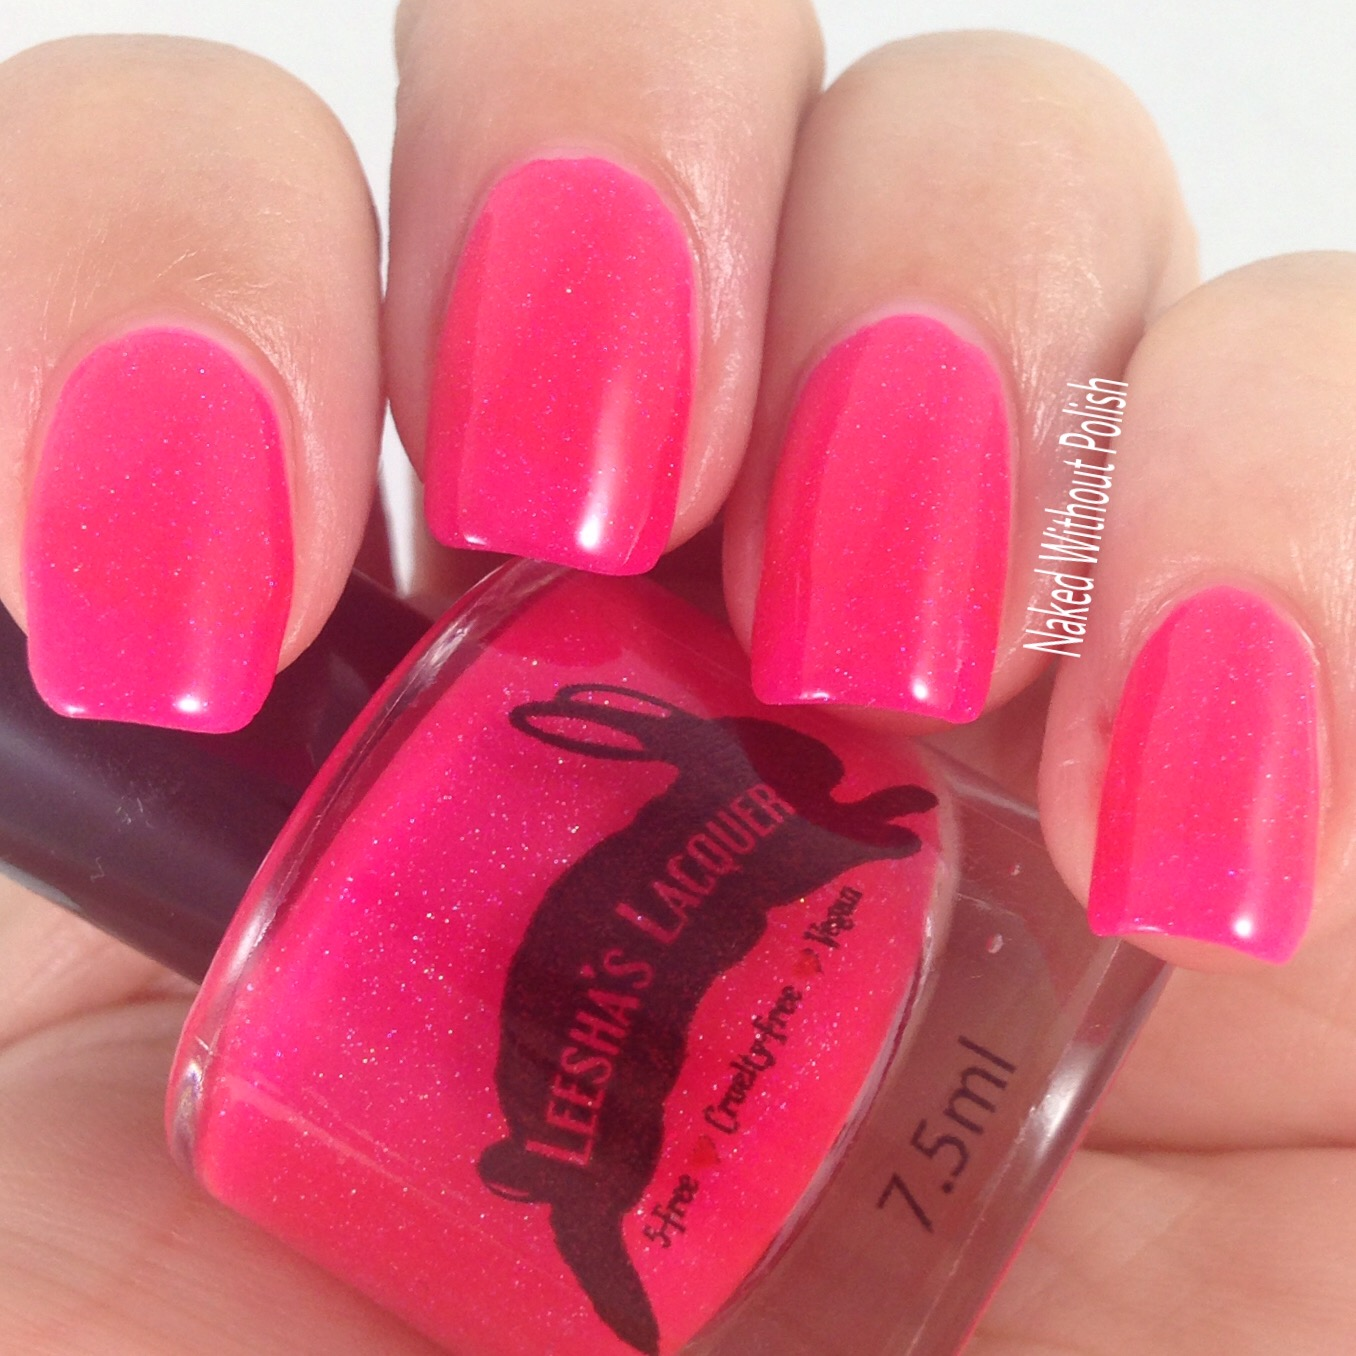 Leeshas-Lacquer-Tongue-Pop-6